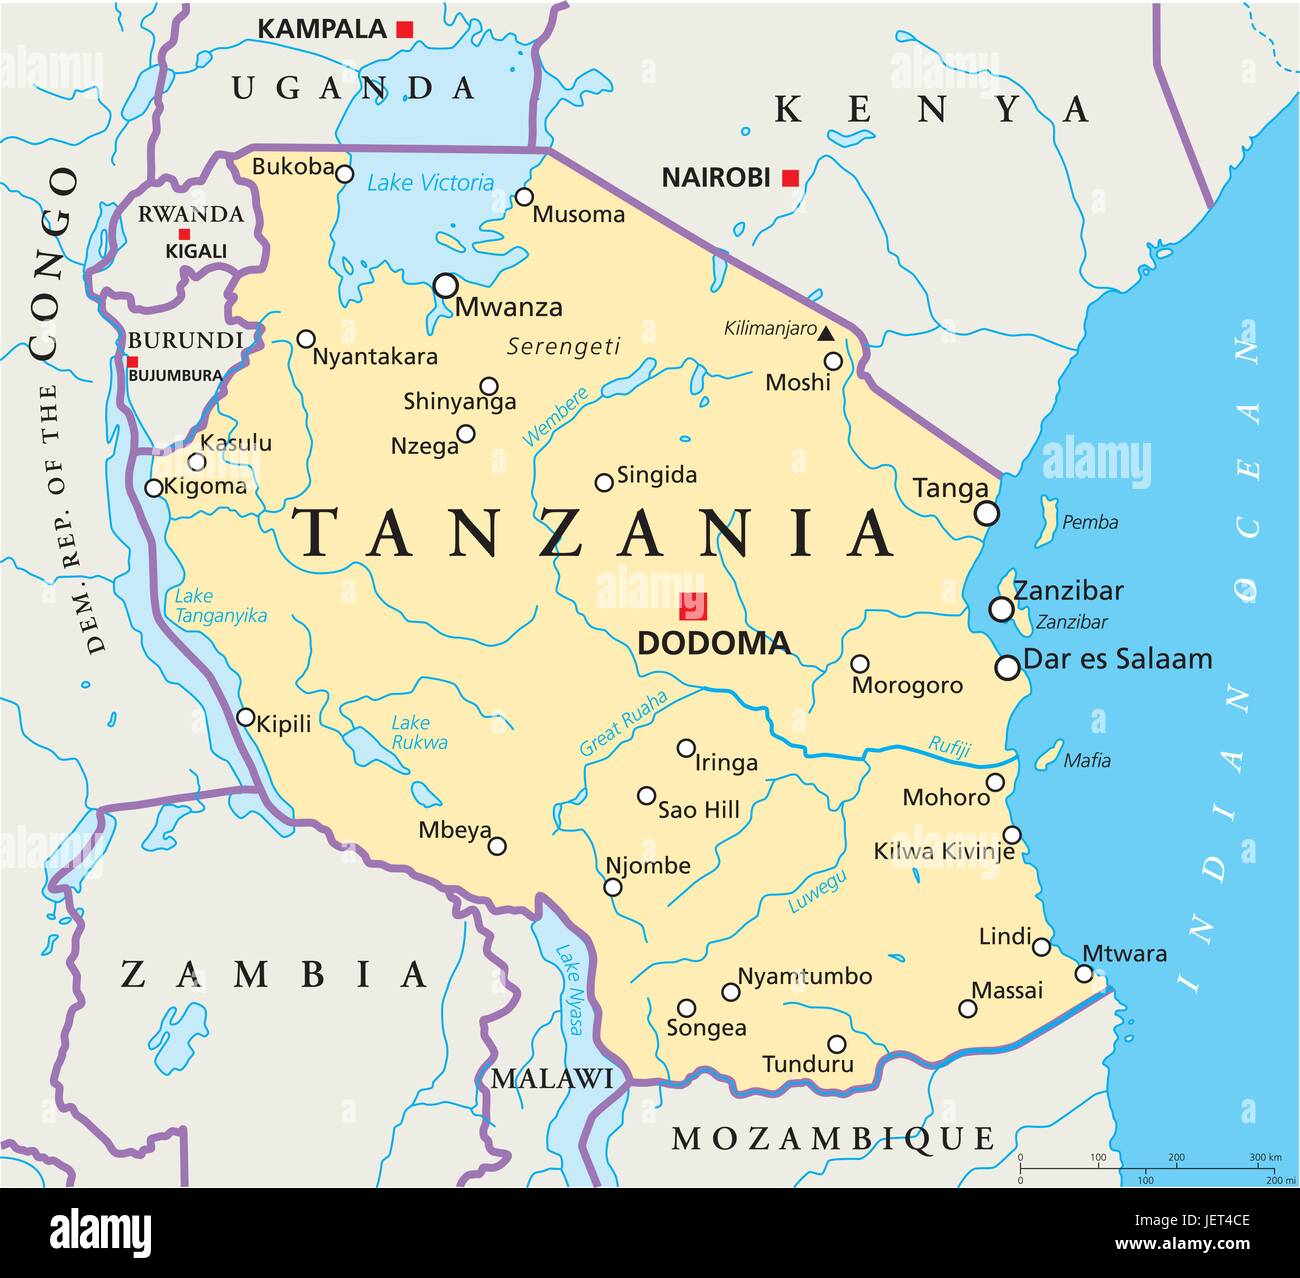 tanzania map atlas map of the world africa kenya illustration